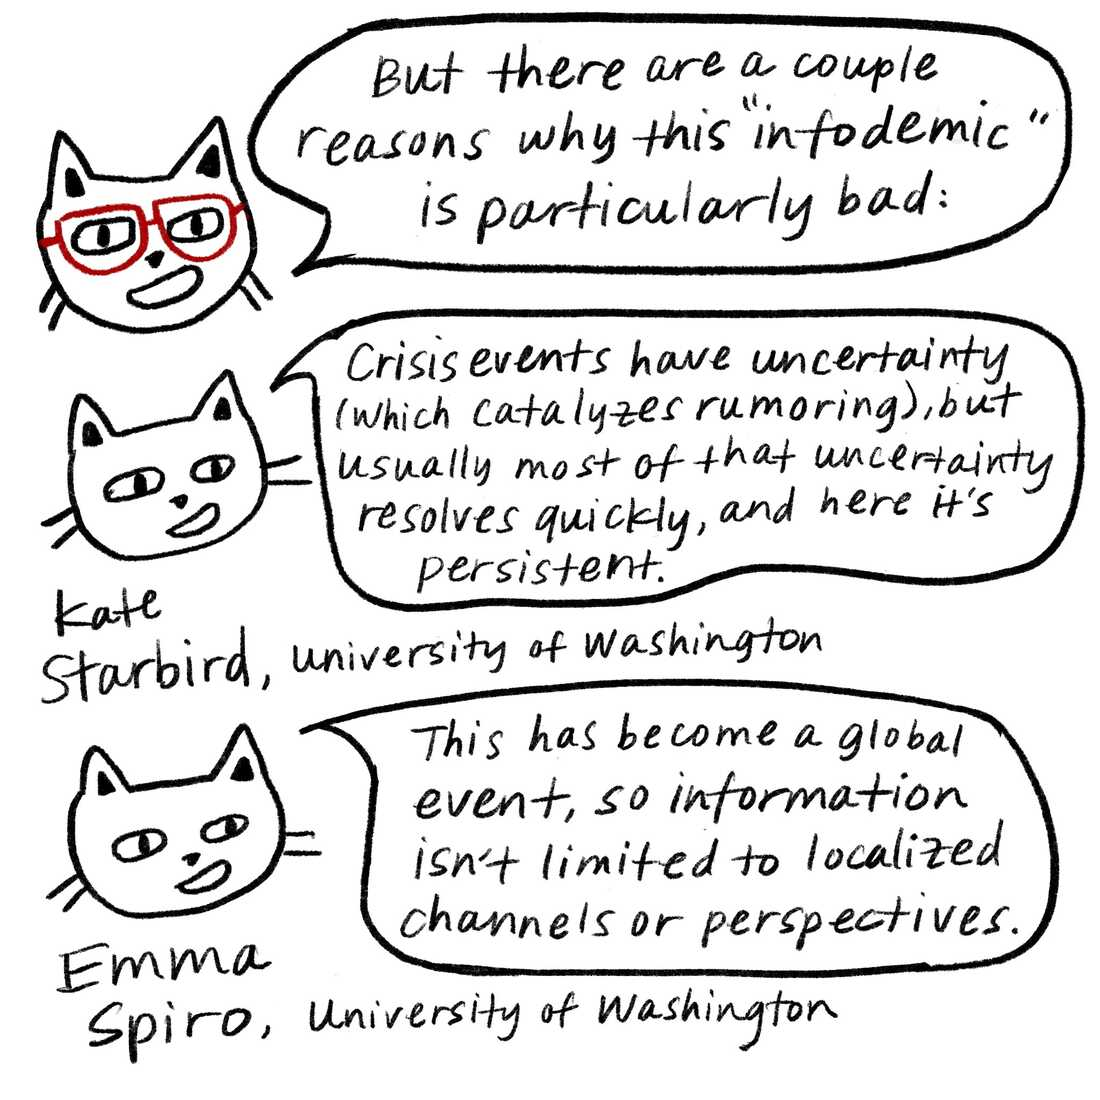 """""""But there are a couple reasons why this 'infodemic' is particularly bad,"""" says Glasses Cat. Kate Starbird, from the University of Washington, adds on, """"Crisis events have uncertainty, which usually resolves quickly, and here it's persistent."""" Emma Spiro, from the University of Washington, adds, """"This has become a global event, so information isn't limited to localized channels or perspectives."""""""